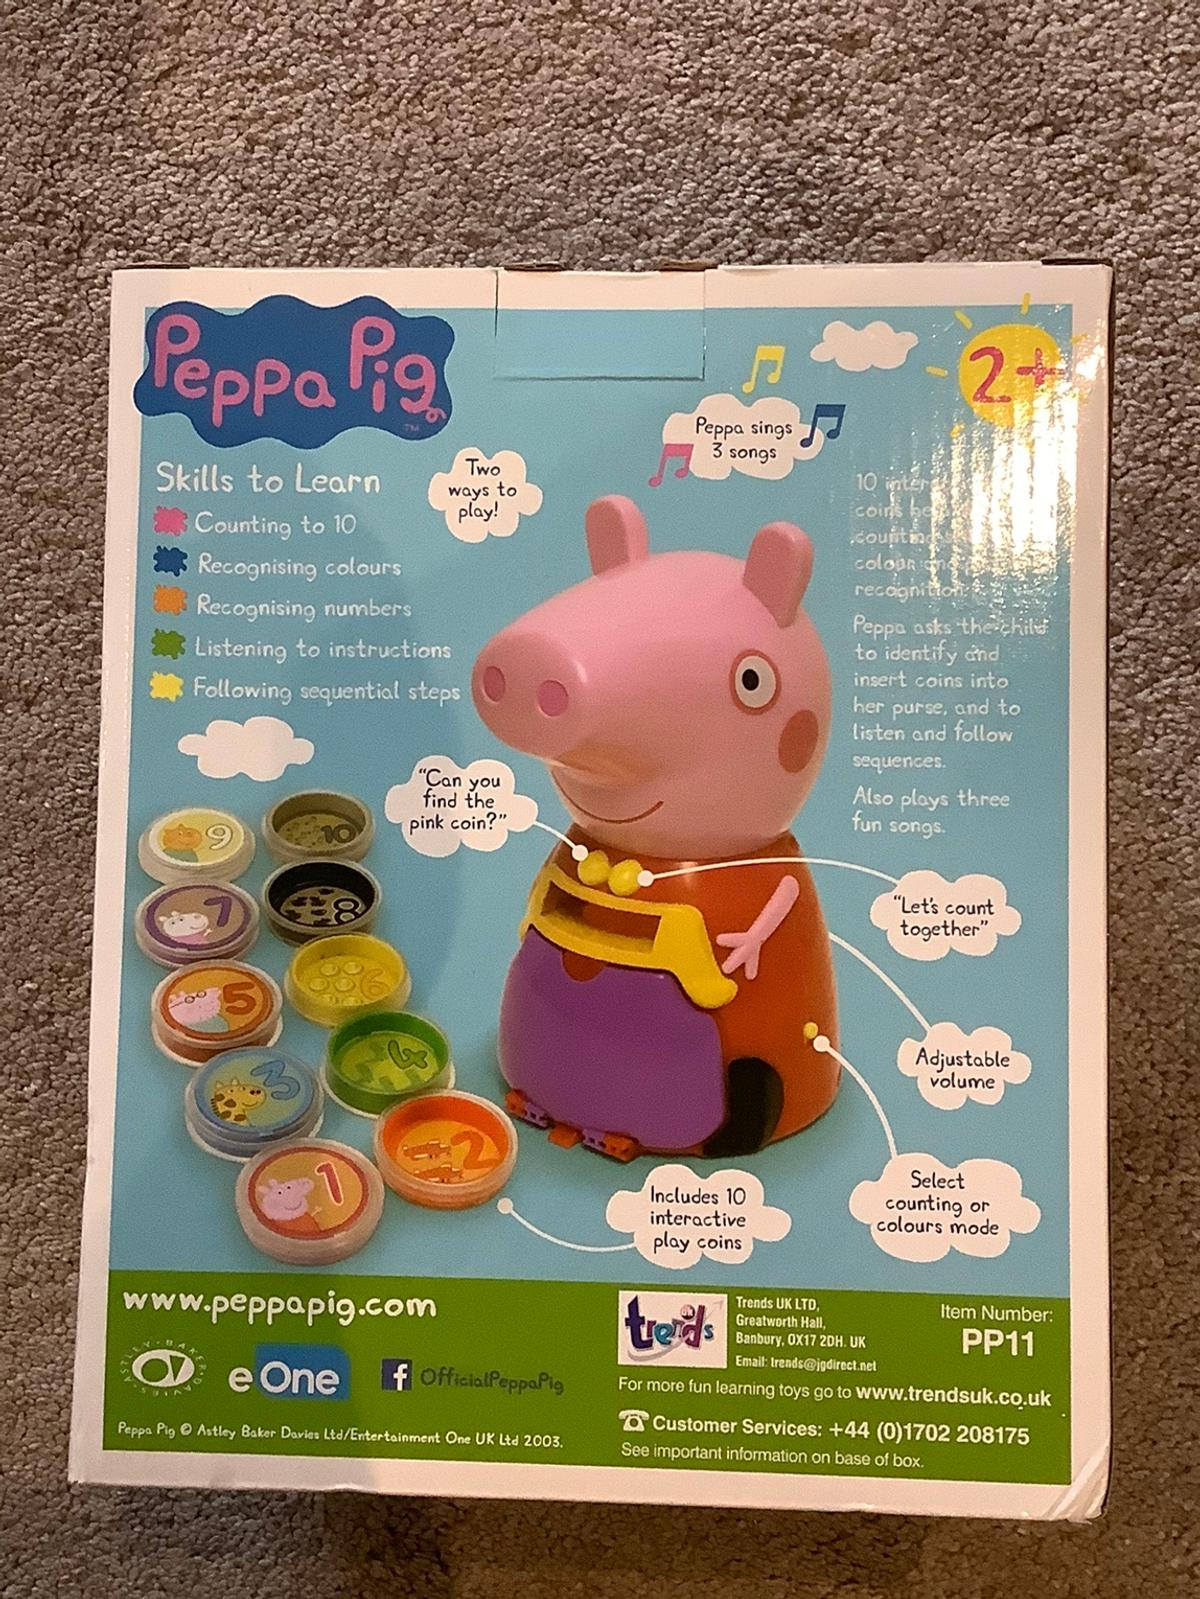 Brand new in original packaging. For ages 2+  Includes 10 interactive numbered coins. See above pictures for functions/features.